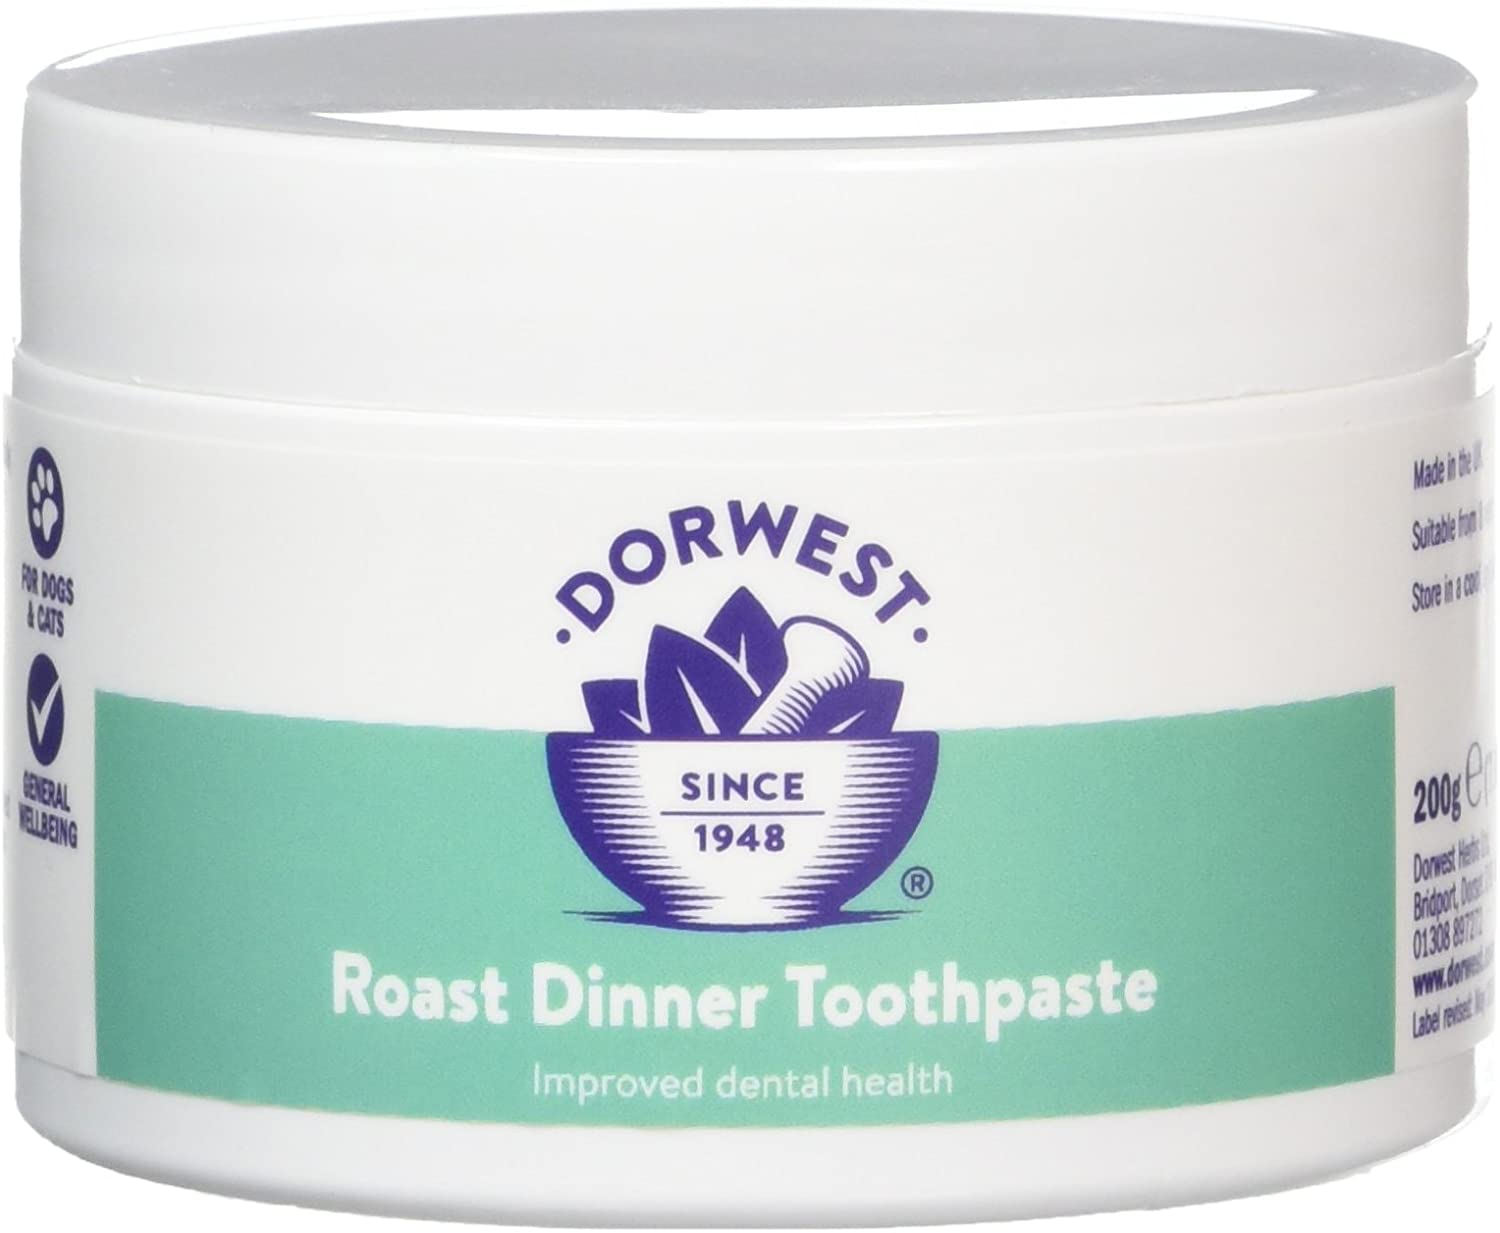 DORWEST HERBS Roast Dinner Toothpaste for Dogs 200g